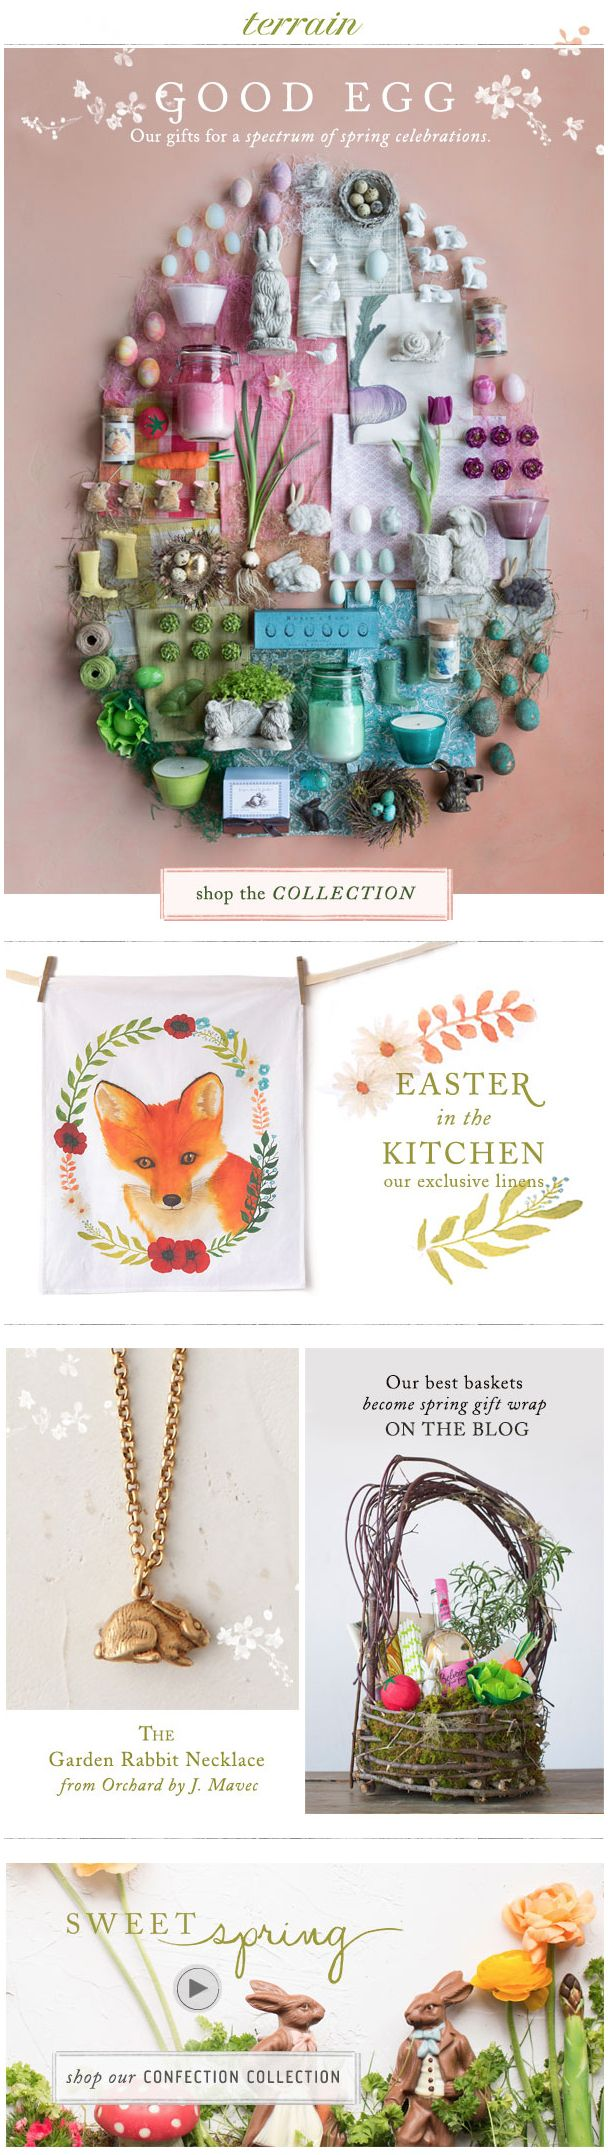 Fold down pieces from collection and place in the shape of an Egg. Take picture and place on Email Marketing